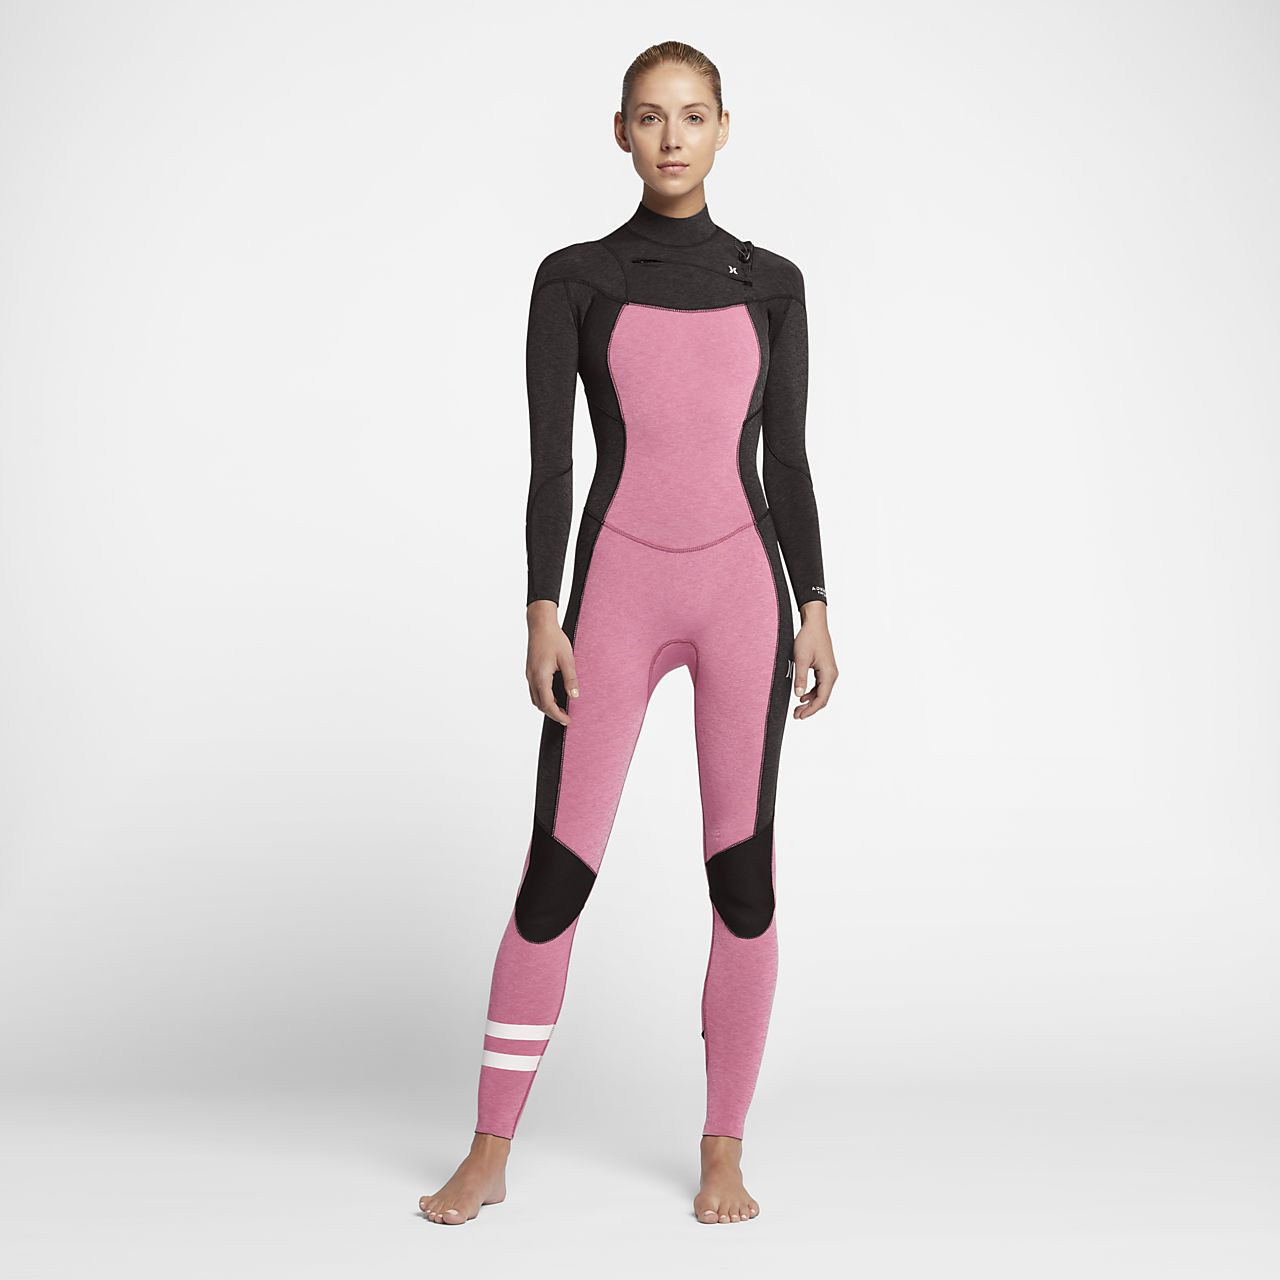 Hurley Advantage Plus 3/2mm Fullsuit Women's Wetsuit